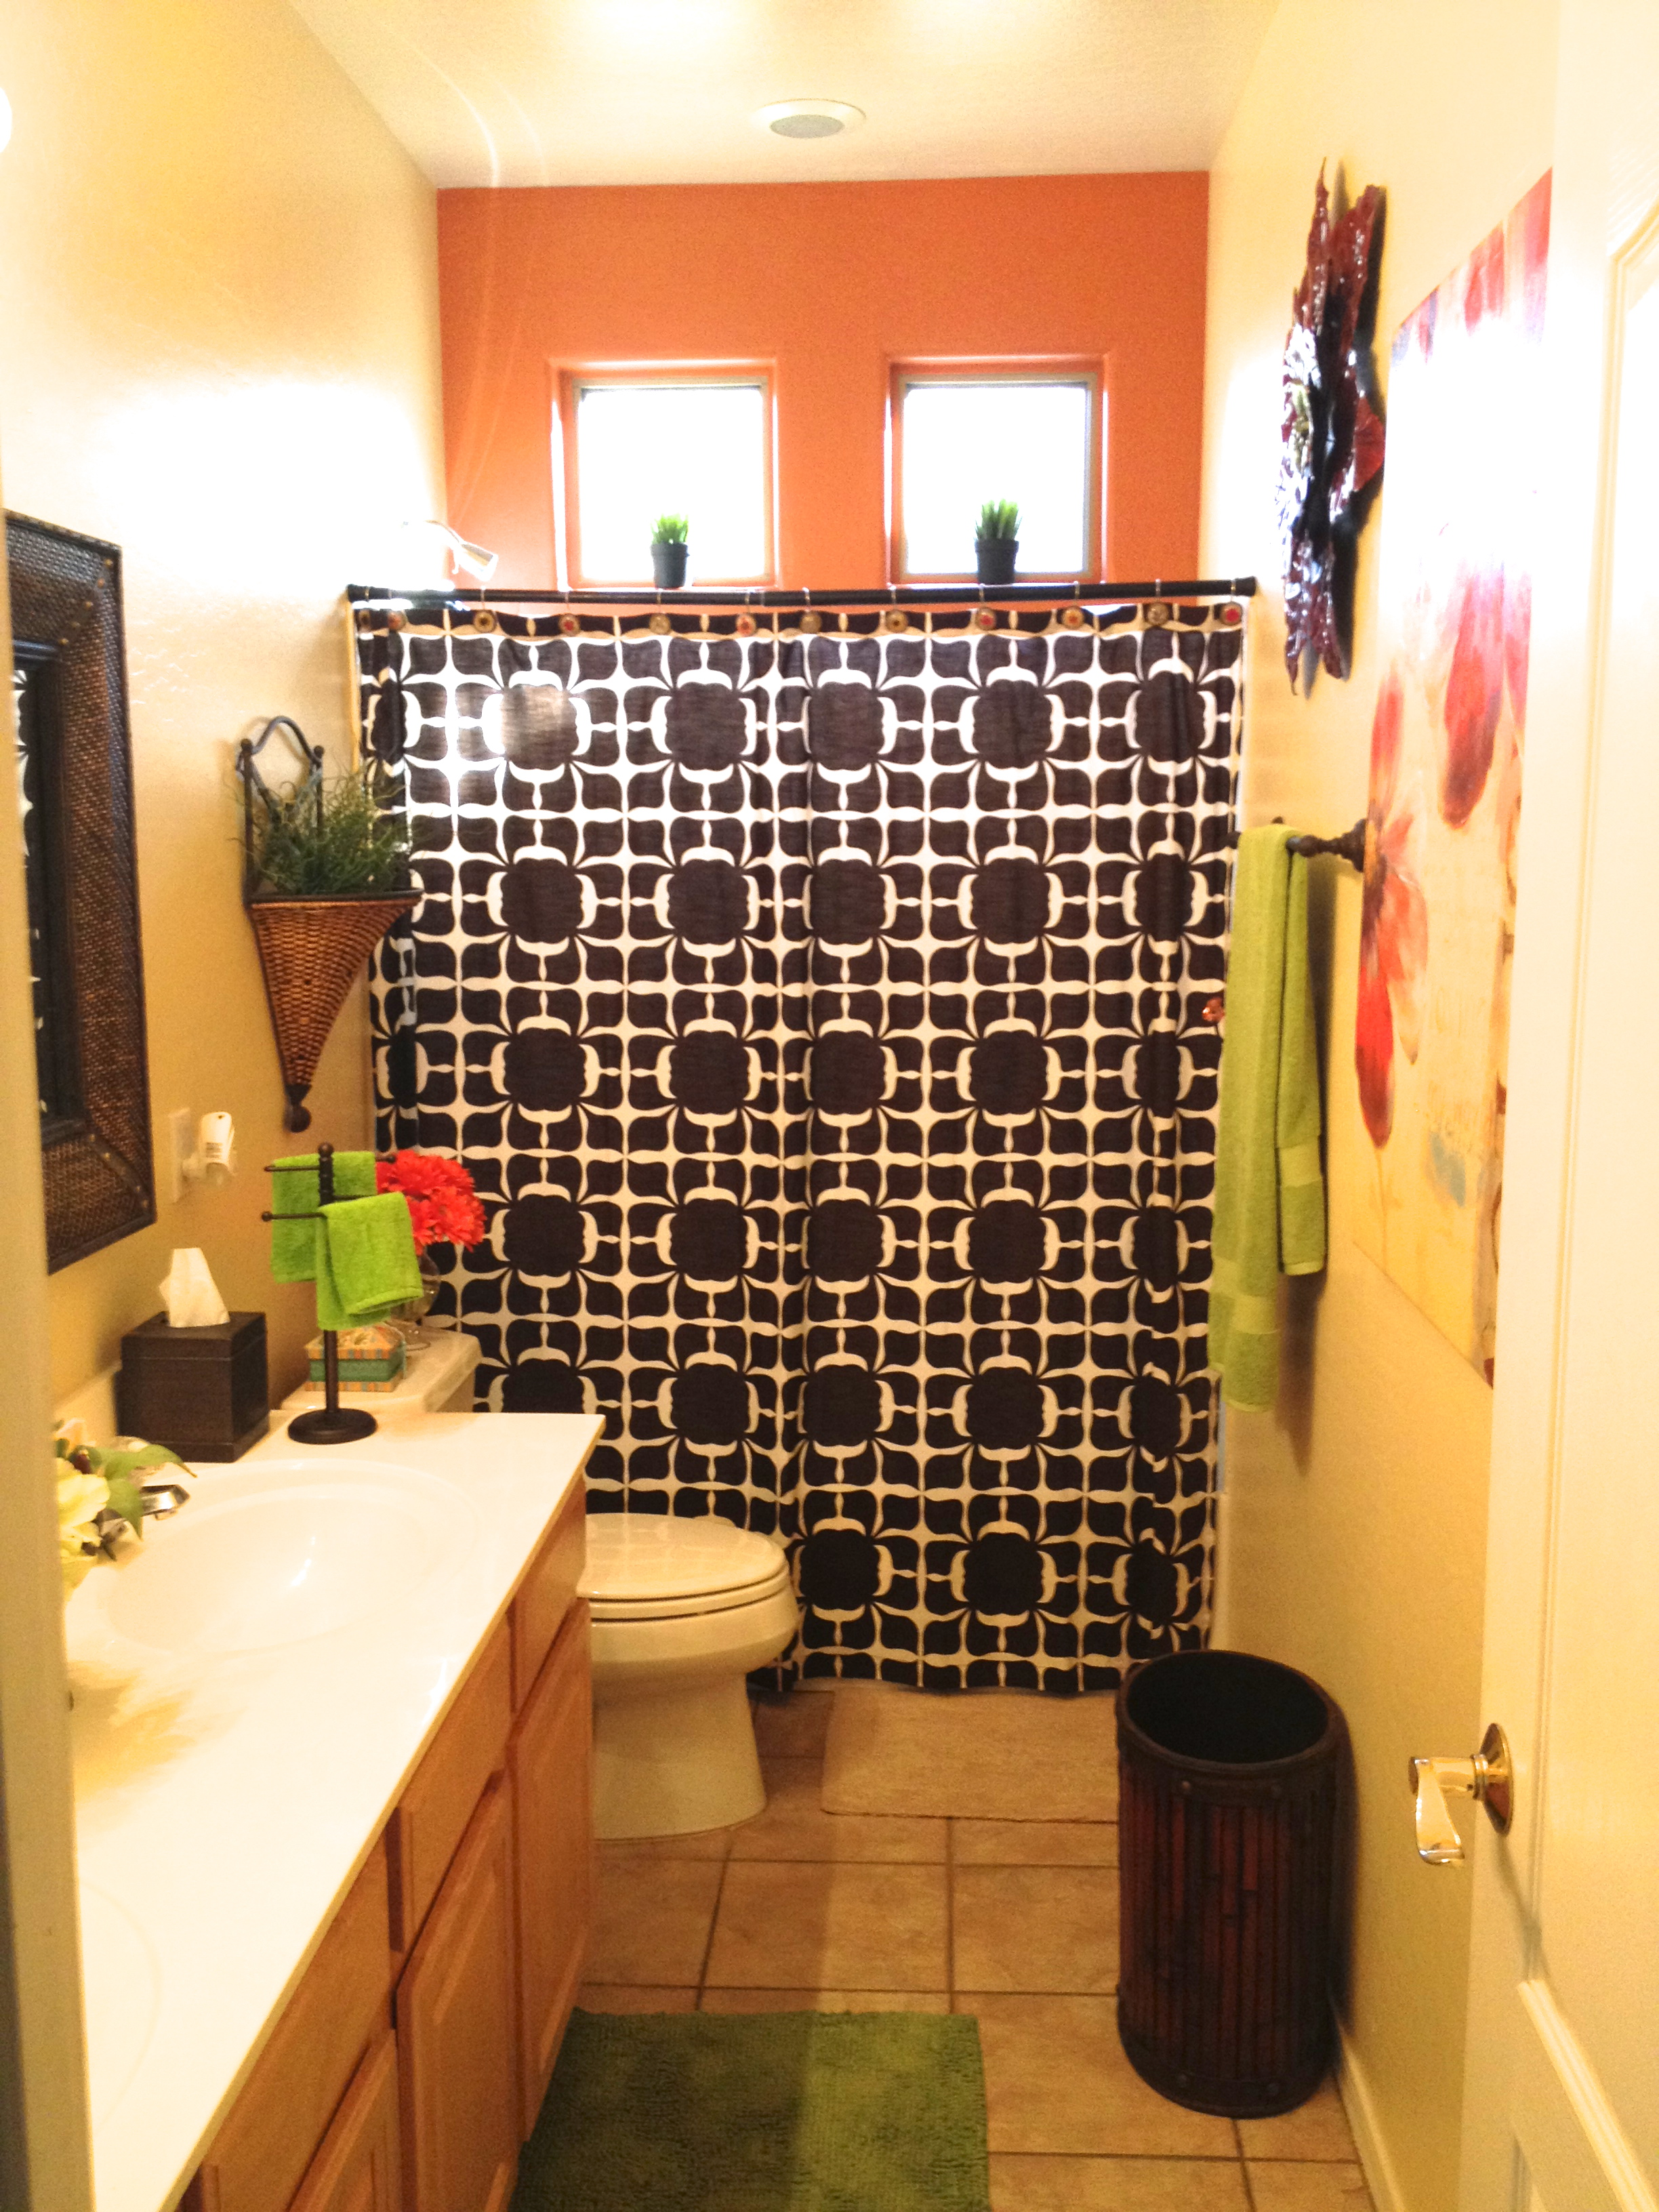 Marvelous  shower curtain from Target and thats what started the Re creation of the bathroom I also was dead set on adding a bright green u orange as accent